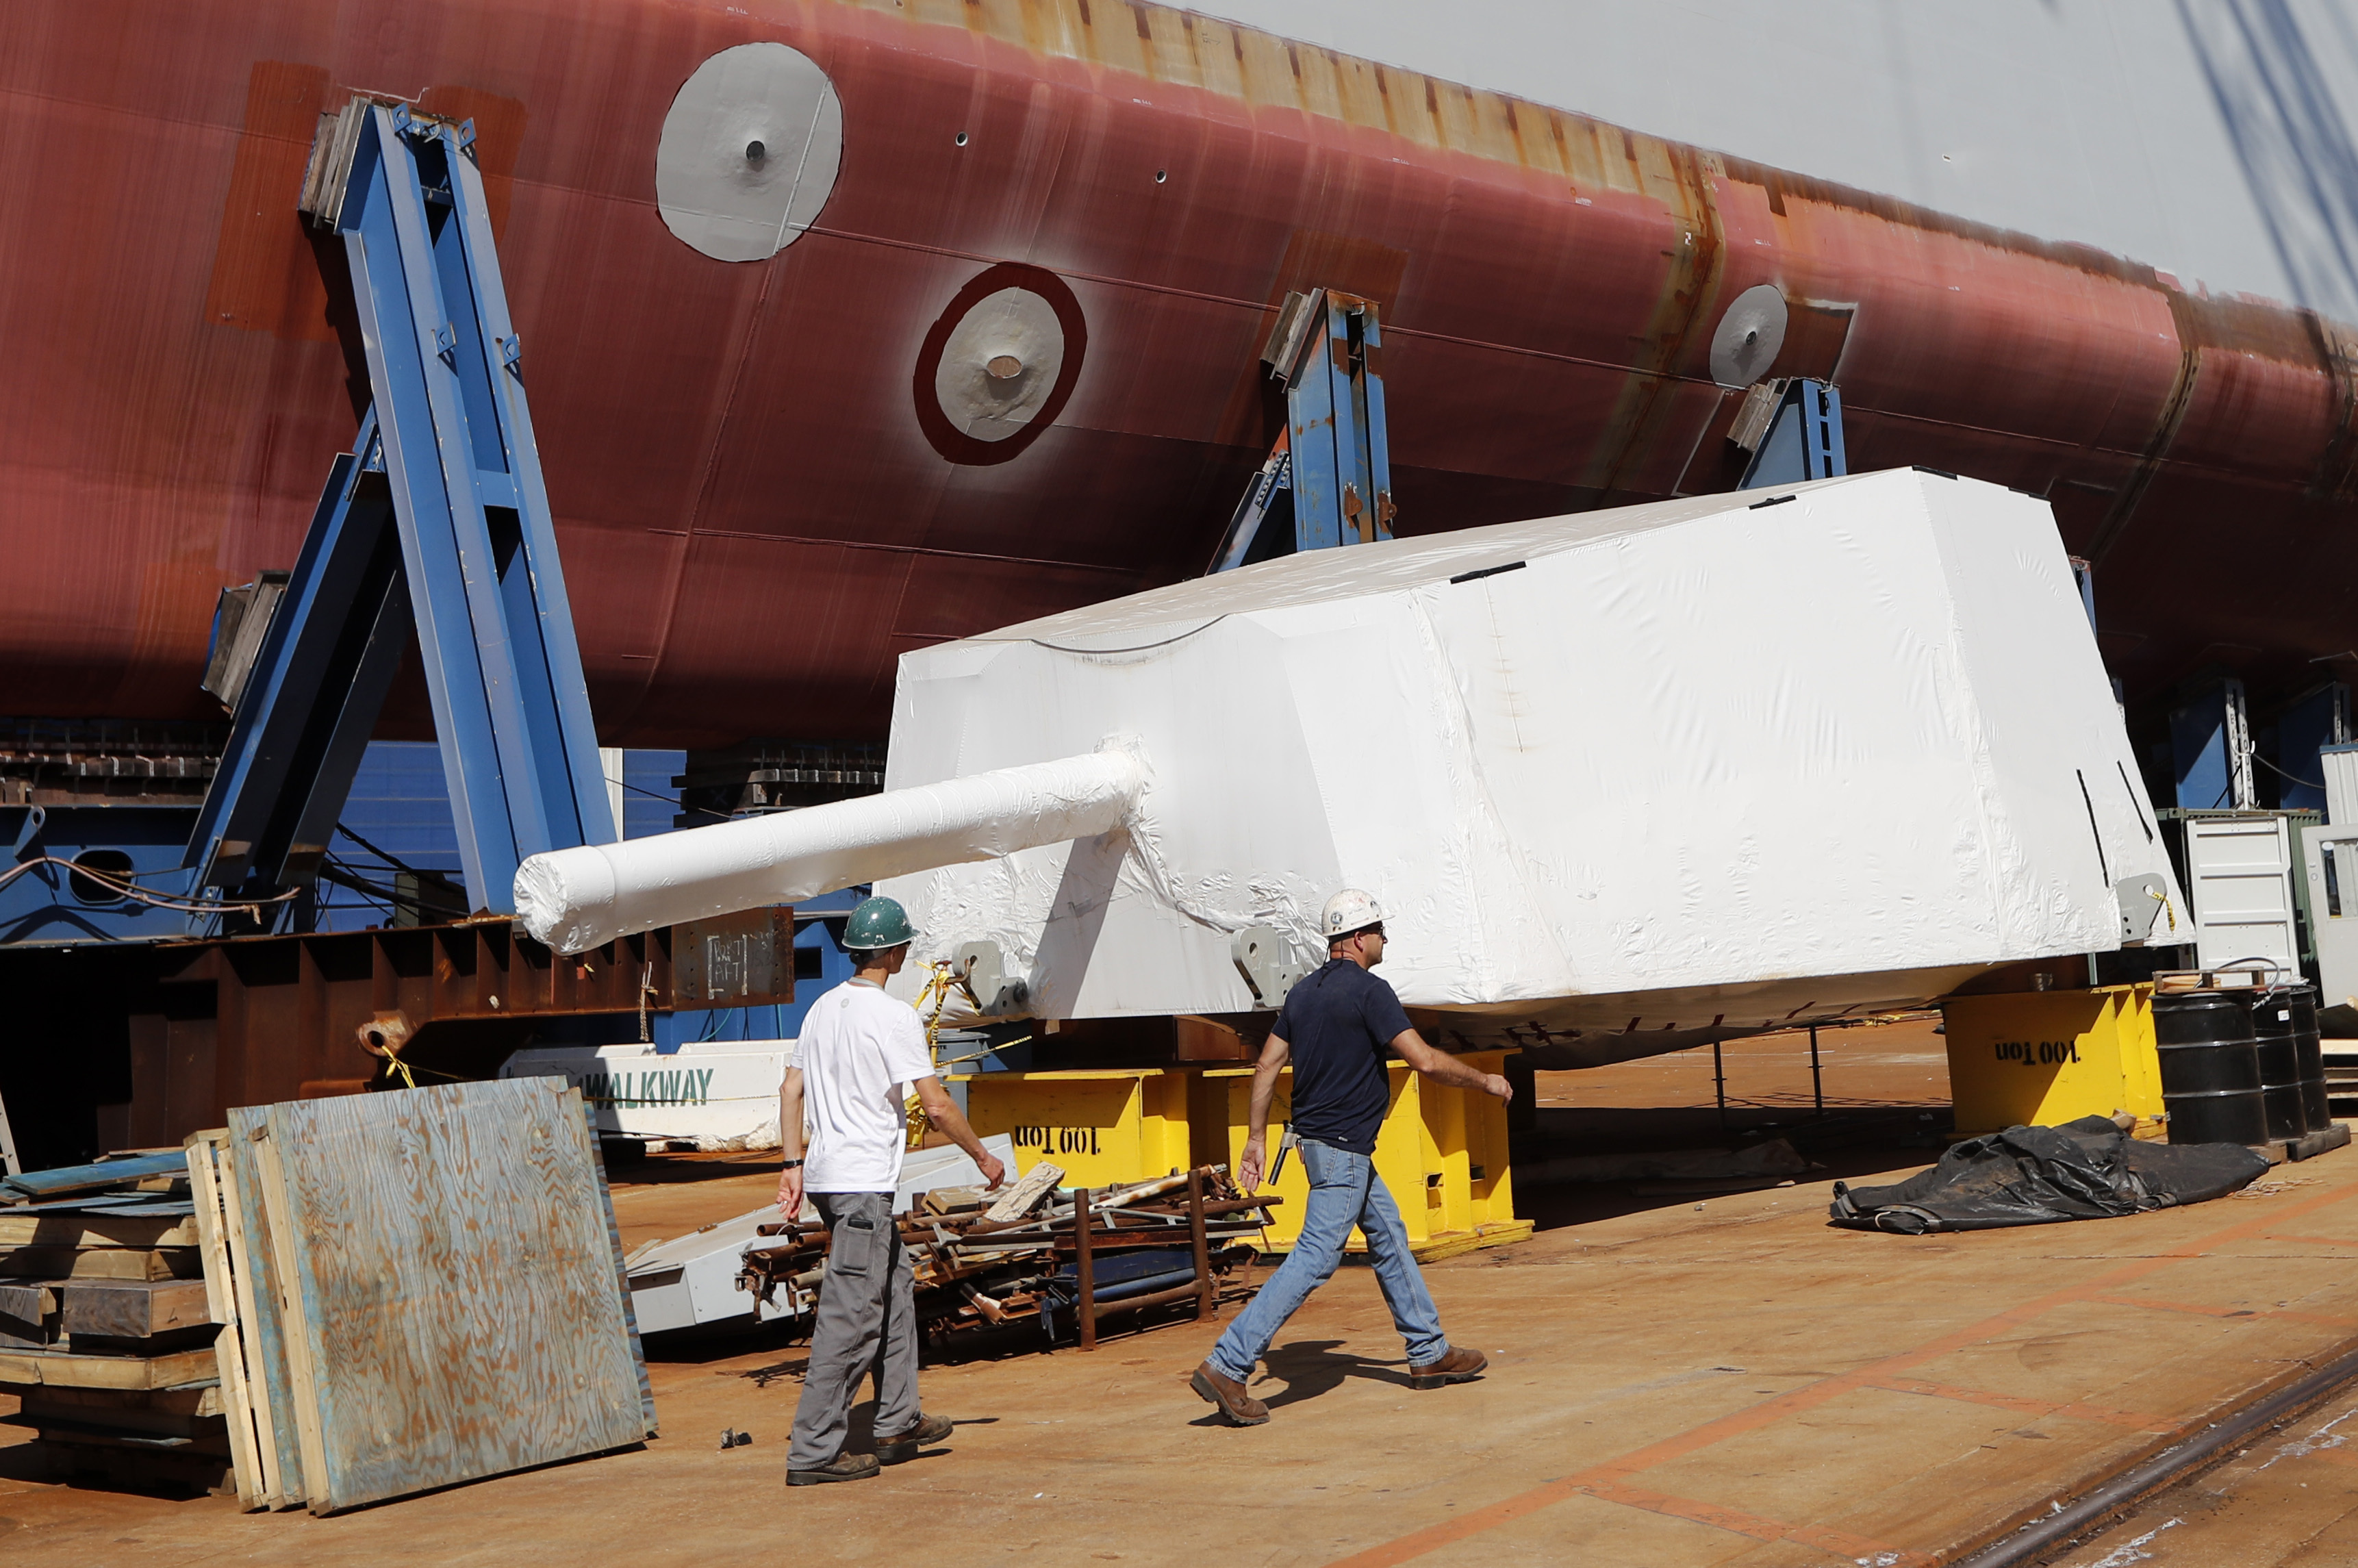 Workers walk by the Advanced Gun System, covered in shrink wrap, alongside a Zumwalt-class destroyer being built in the shipyard at Bath Iron Works in Bath, Maine, on Aug. 29, 2018.